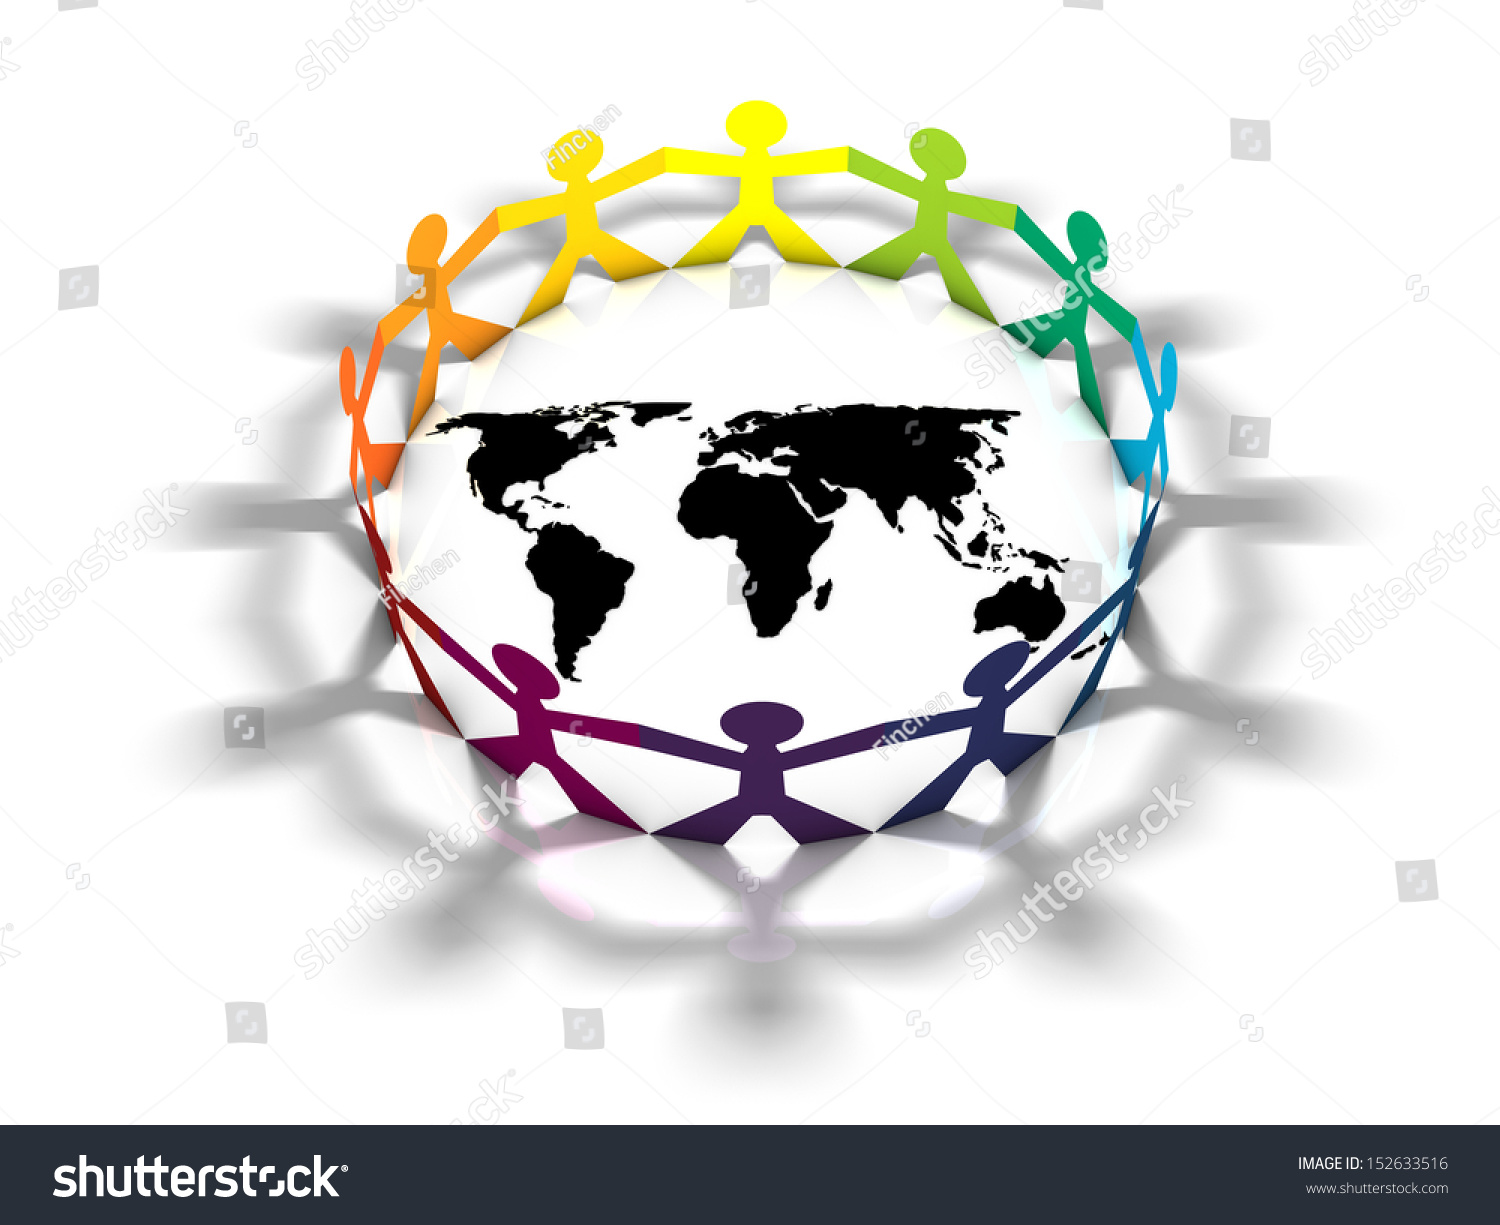 Global Community Stock Photo 152633516 : Shutterstock: www.shutterstock.com/pic-152633516/stock-photo-global-community.html